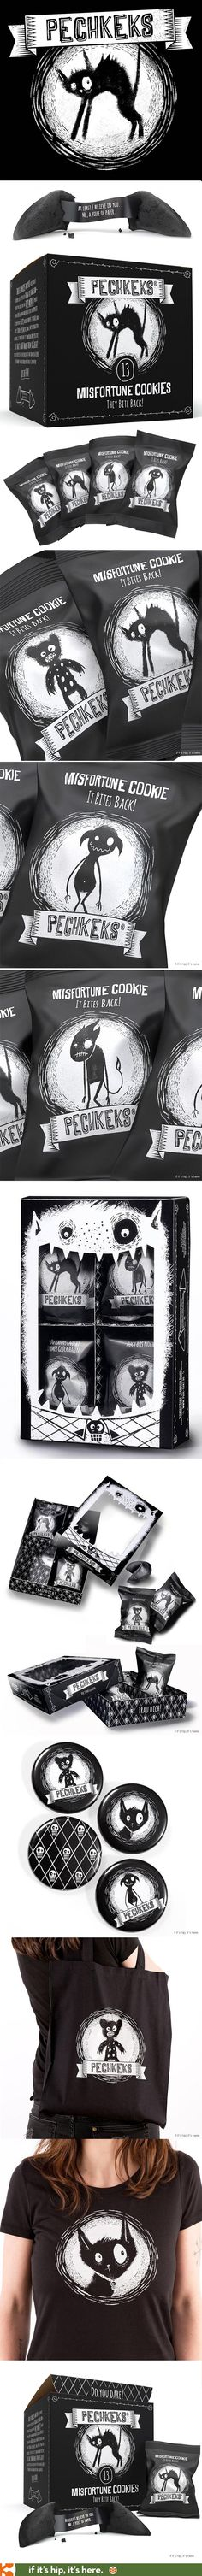 Dark Cookies with a Dark Sense of Humor (and Great Branding and Package Design)  PD